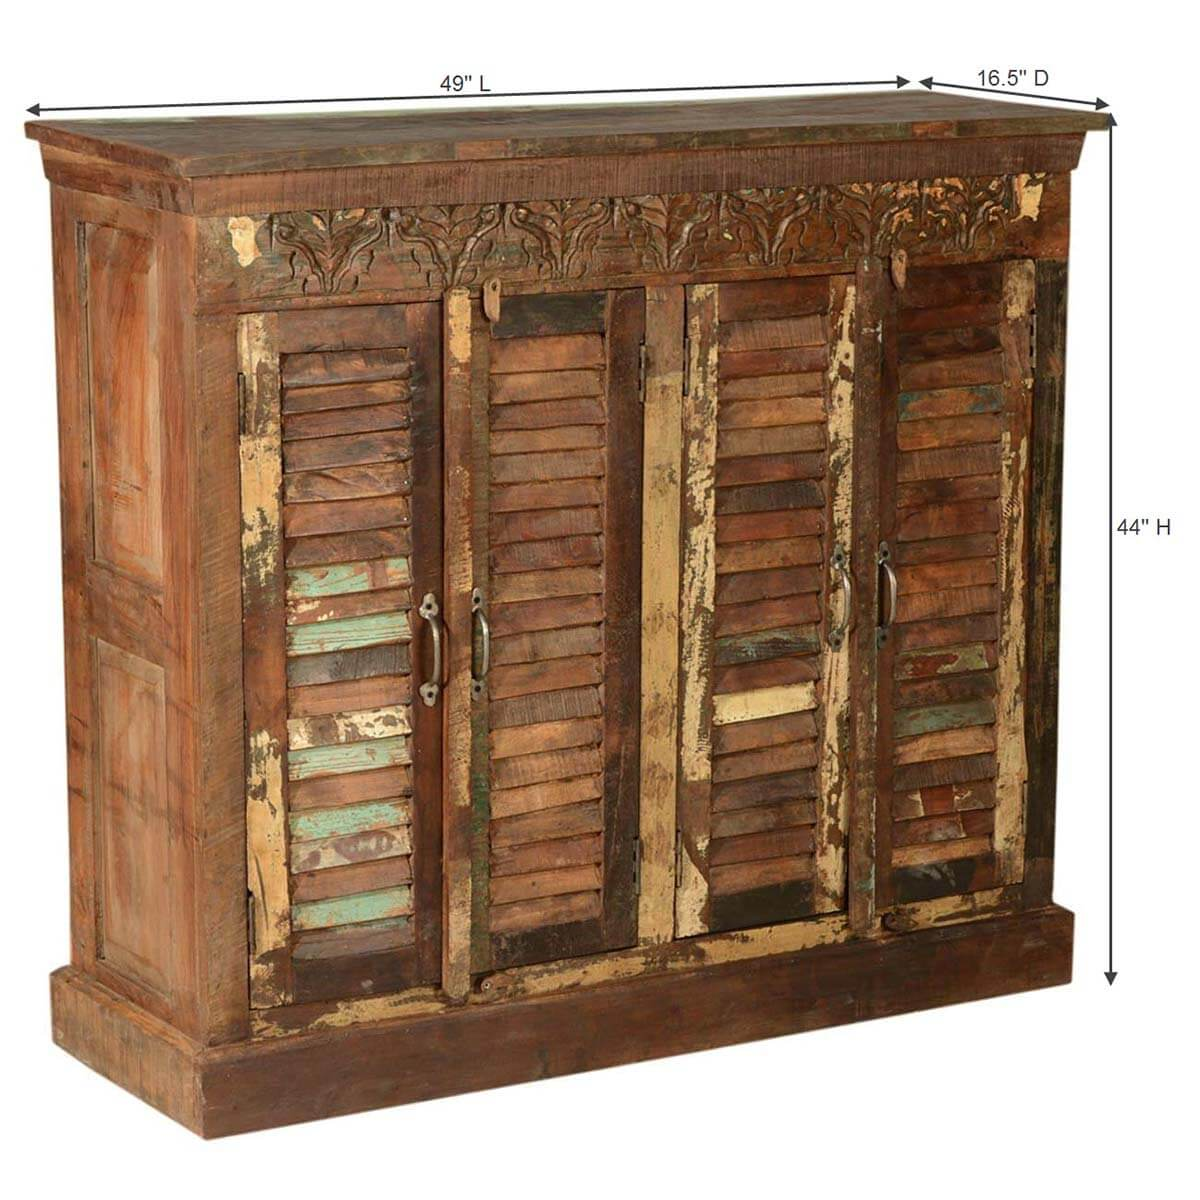 Ardin rustic reclaimed wood shutter door buffet cabinet